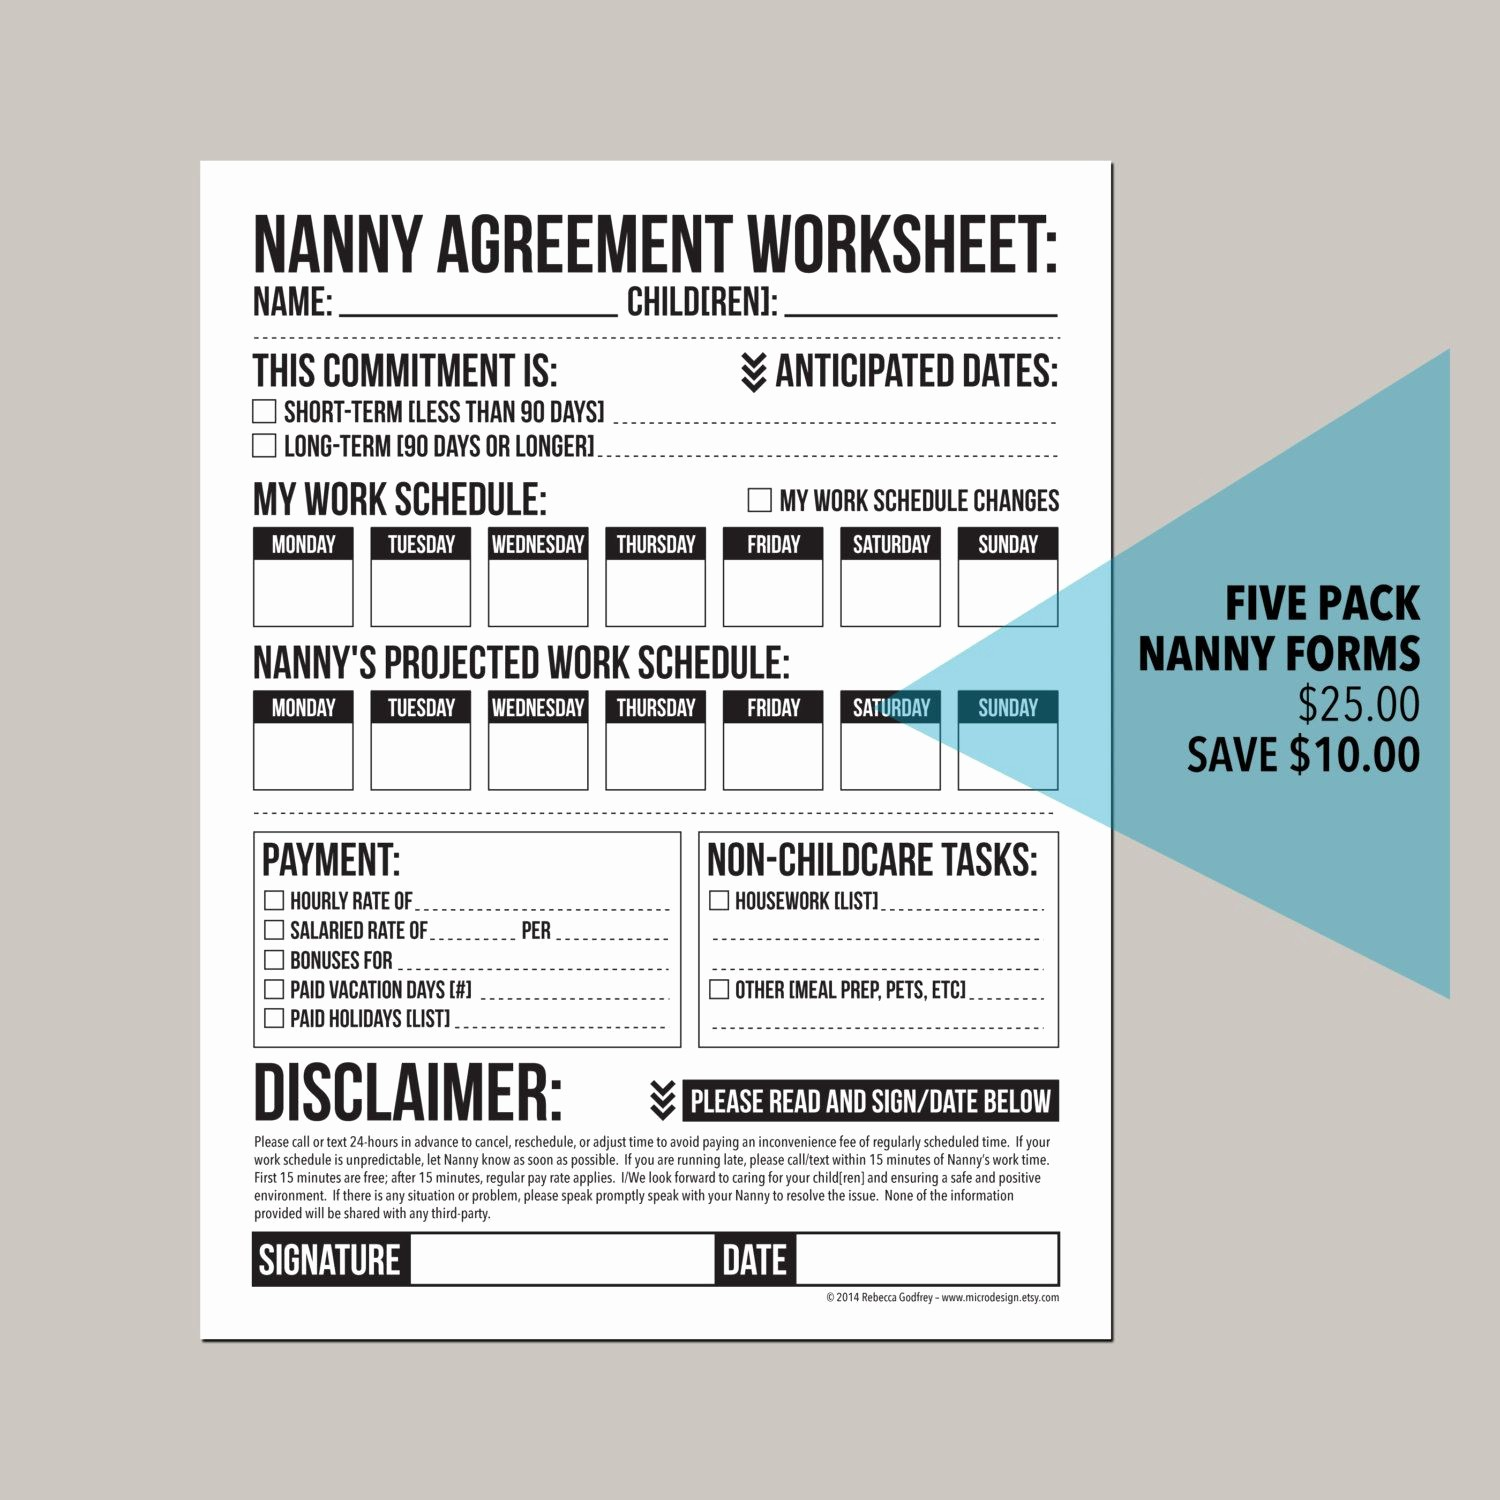 Emergency Contact Sheet for Nanny Luxury Save $10 by Purchasing Five Of My Most Popular Nanny forms